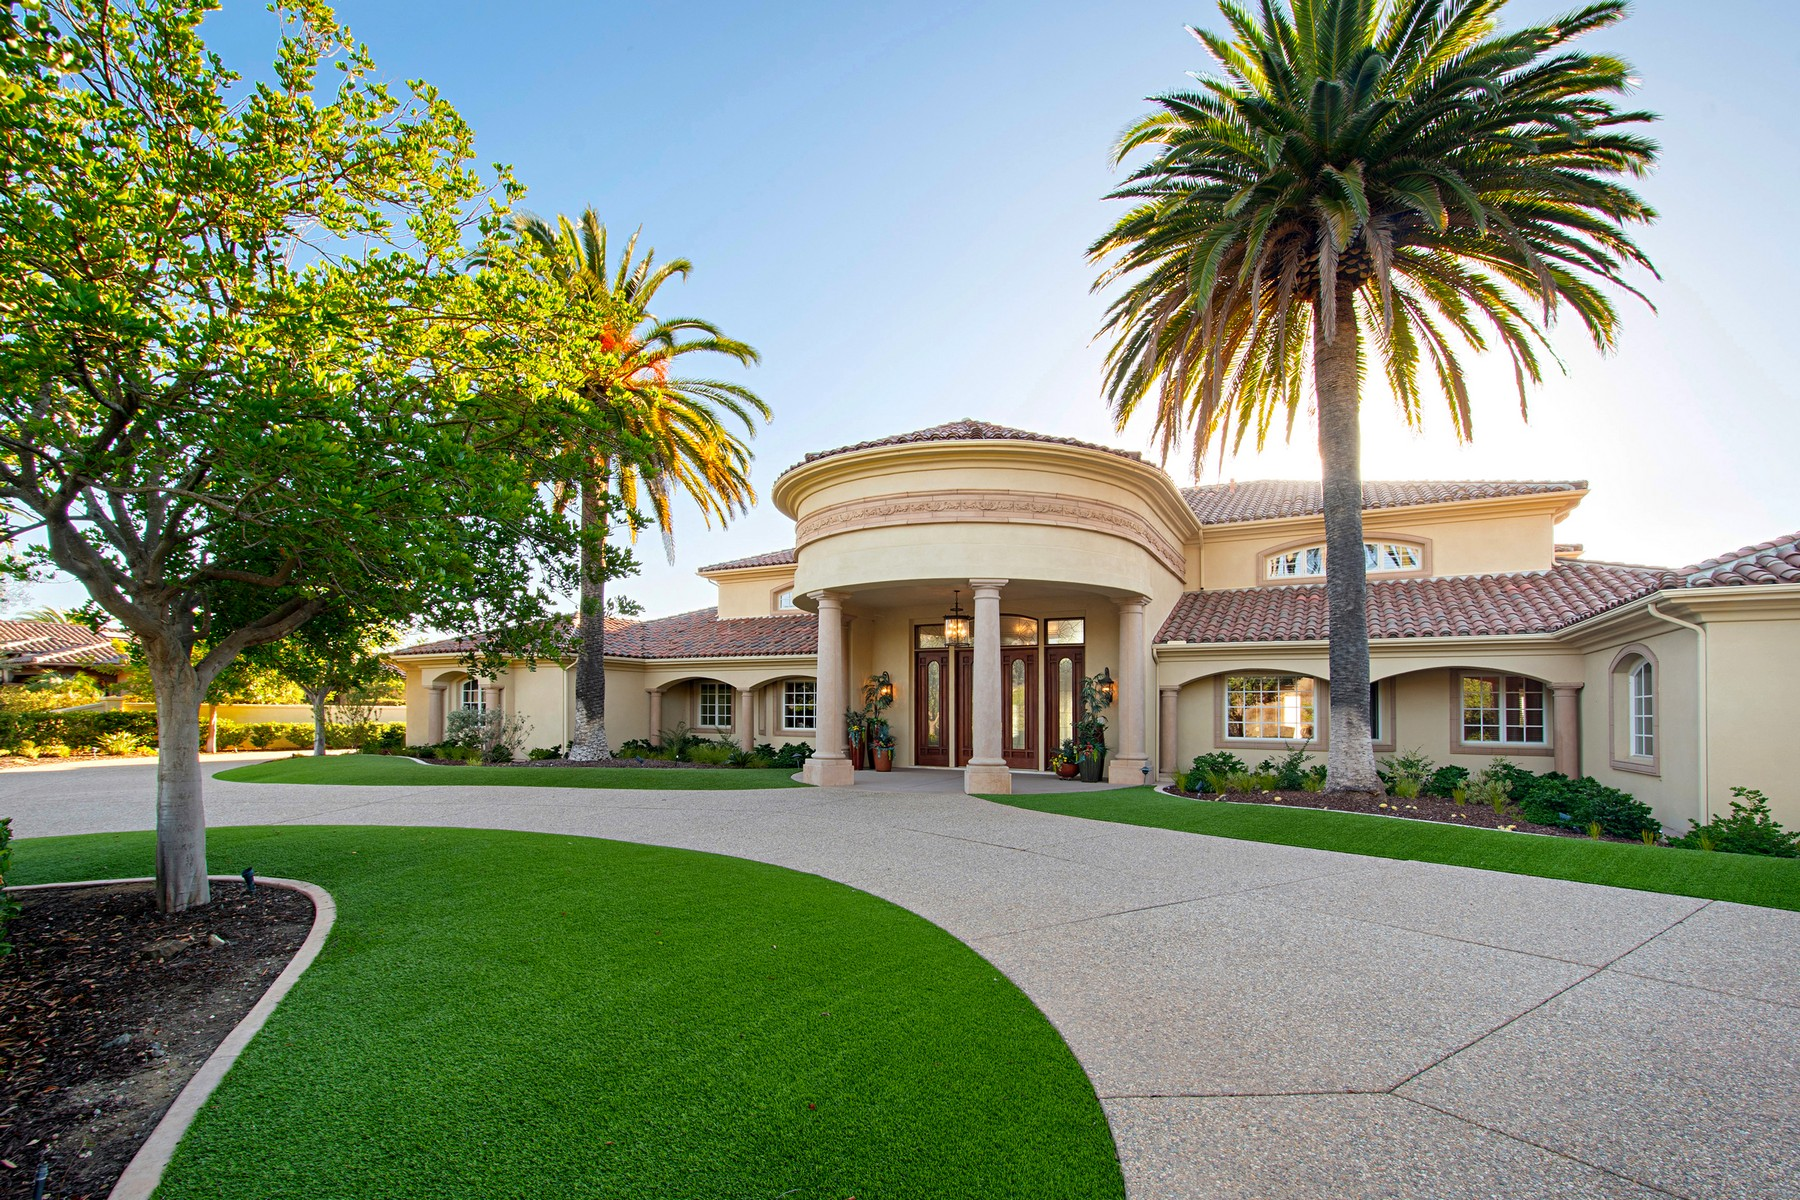 Single Family Home for Active at 18330 Old Coach Way 18330 Old Coach Way Poway, California 92064 United States